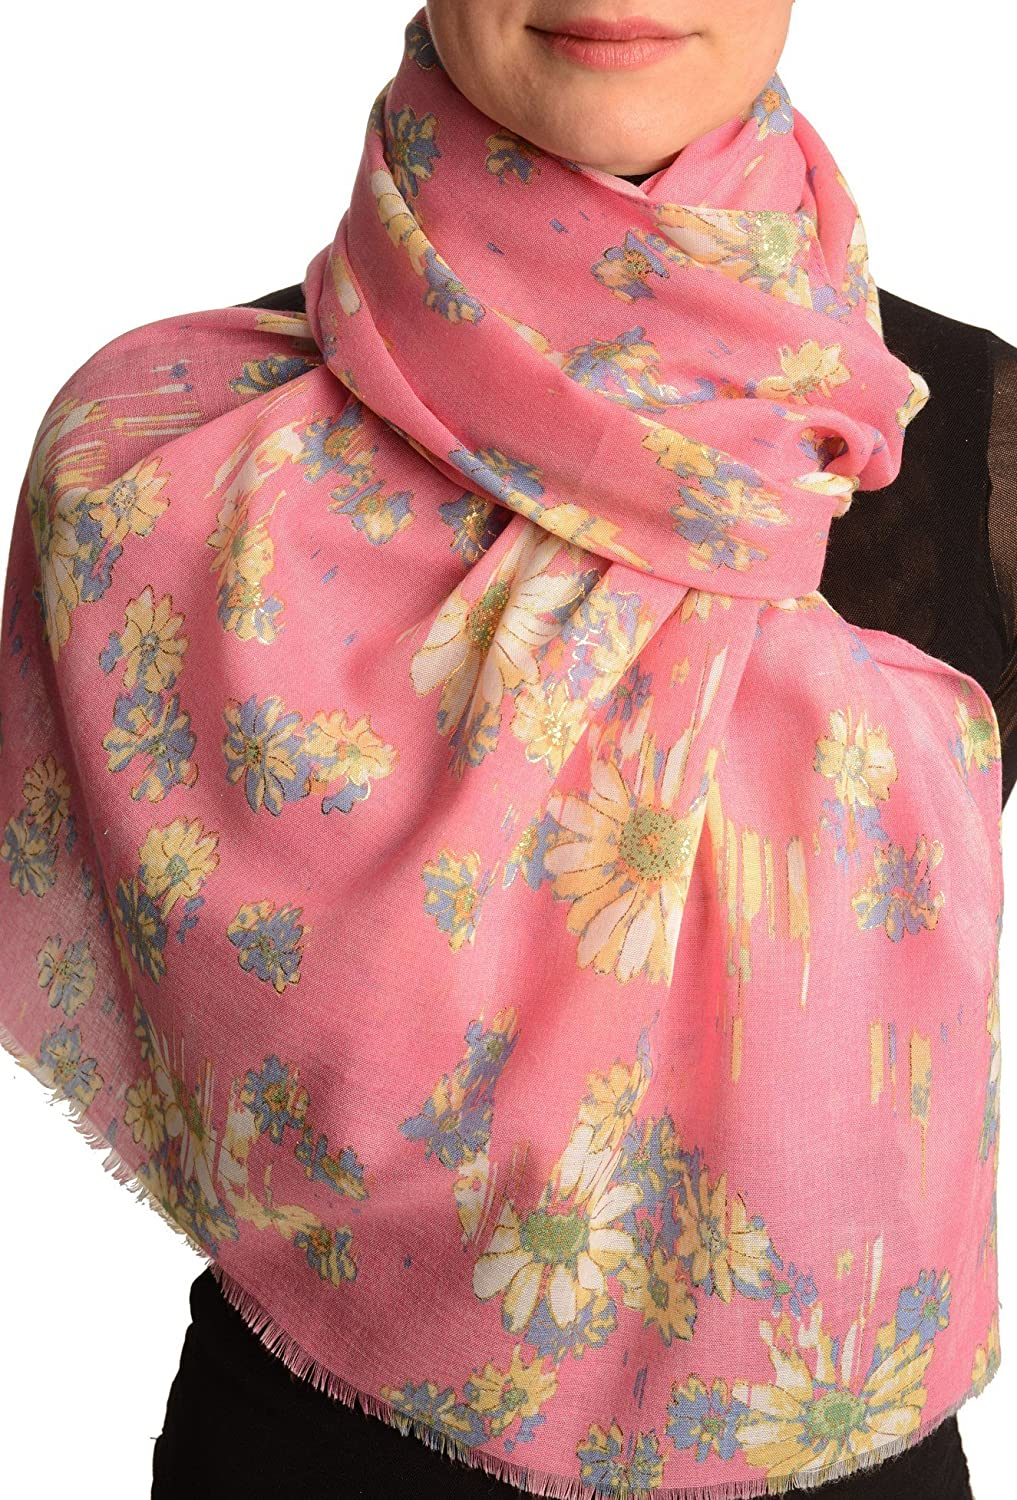 Pink With Gold Trim Daisies Scarf - Scarf